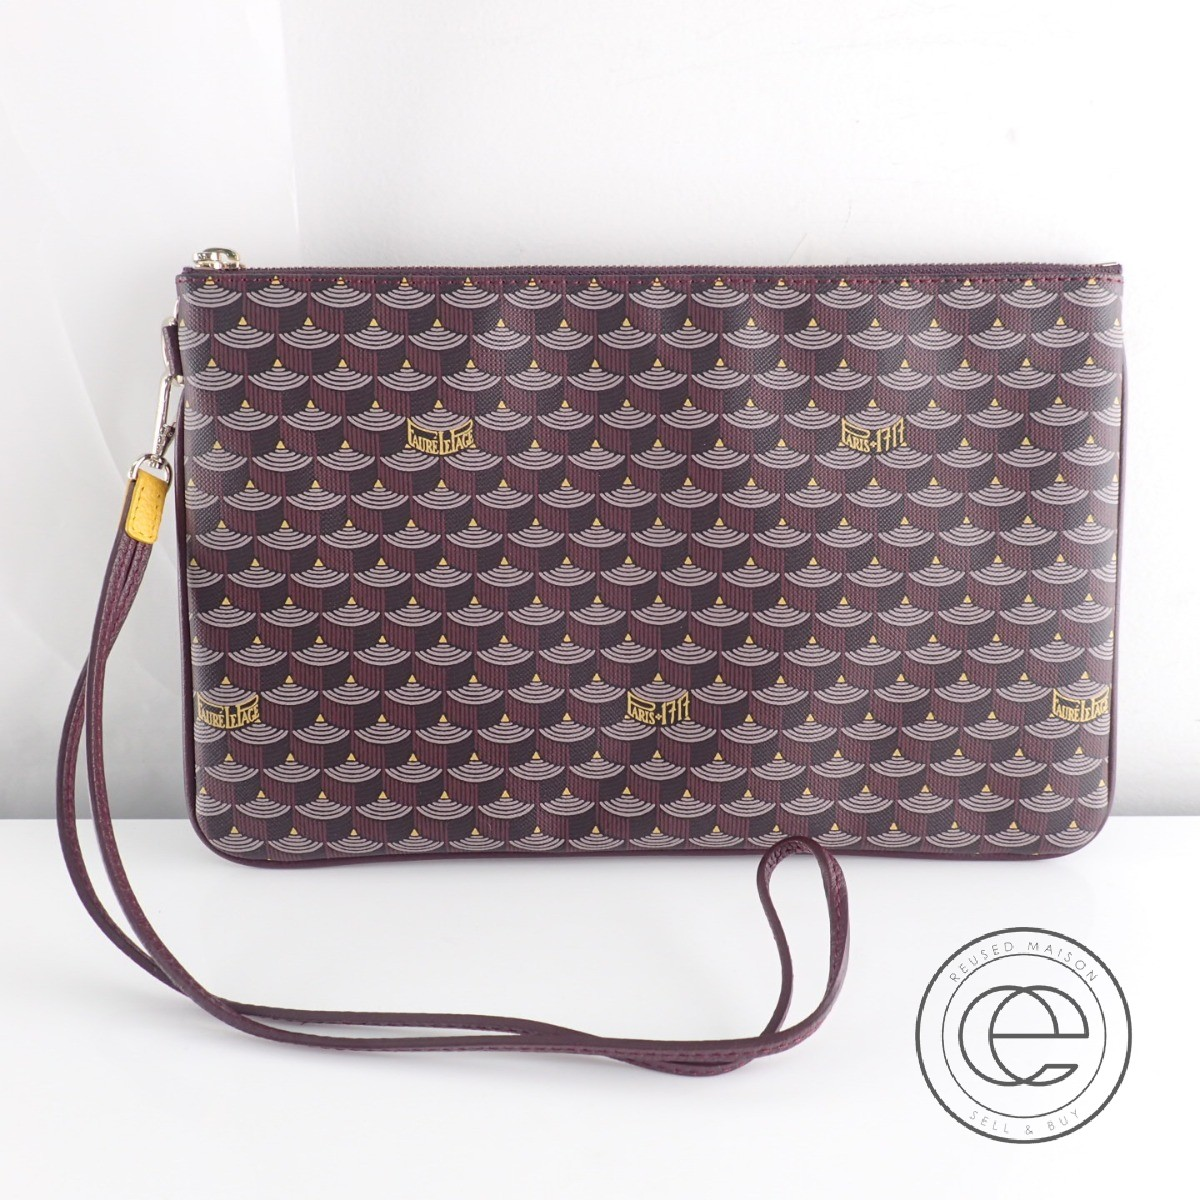 FAURE LE PAGE PARIS フォレルパージュパリ POCHETTE ZIP 29 エカイユ柄 クラッチバッグ ボルドー【中古】